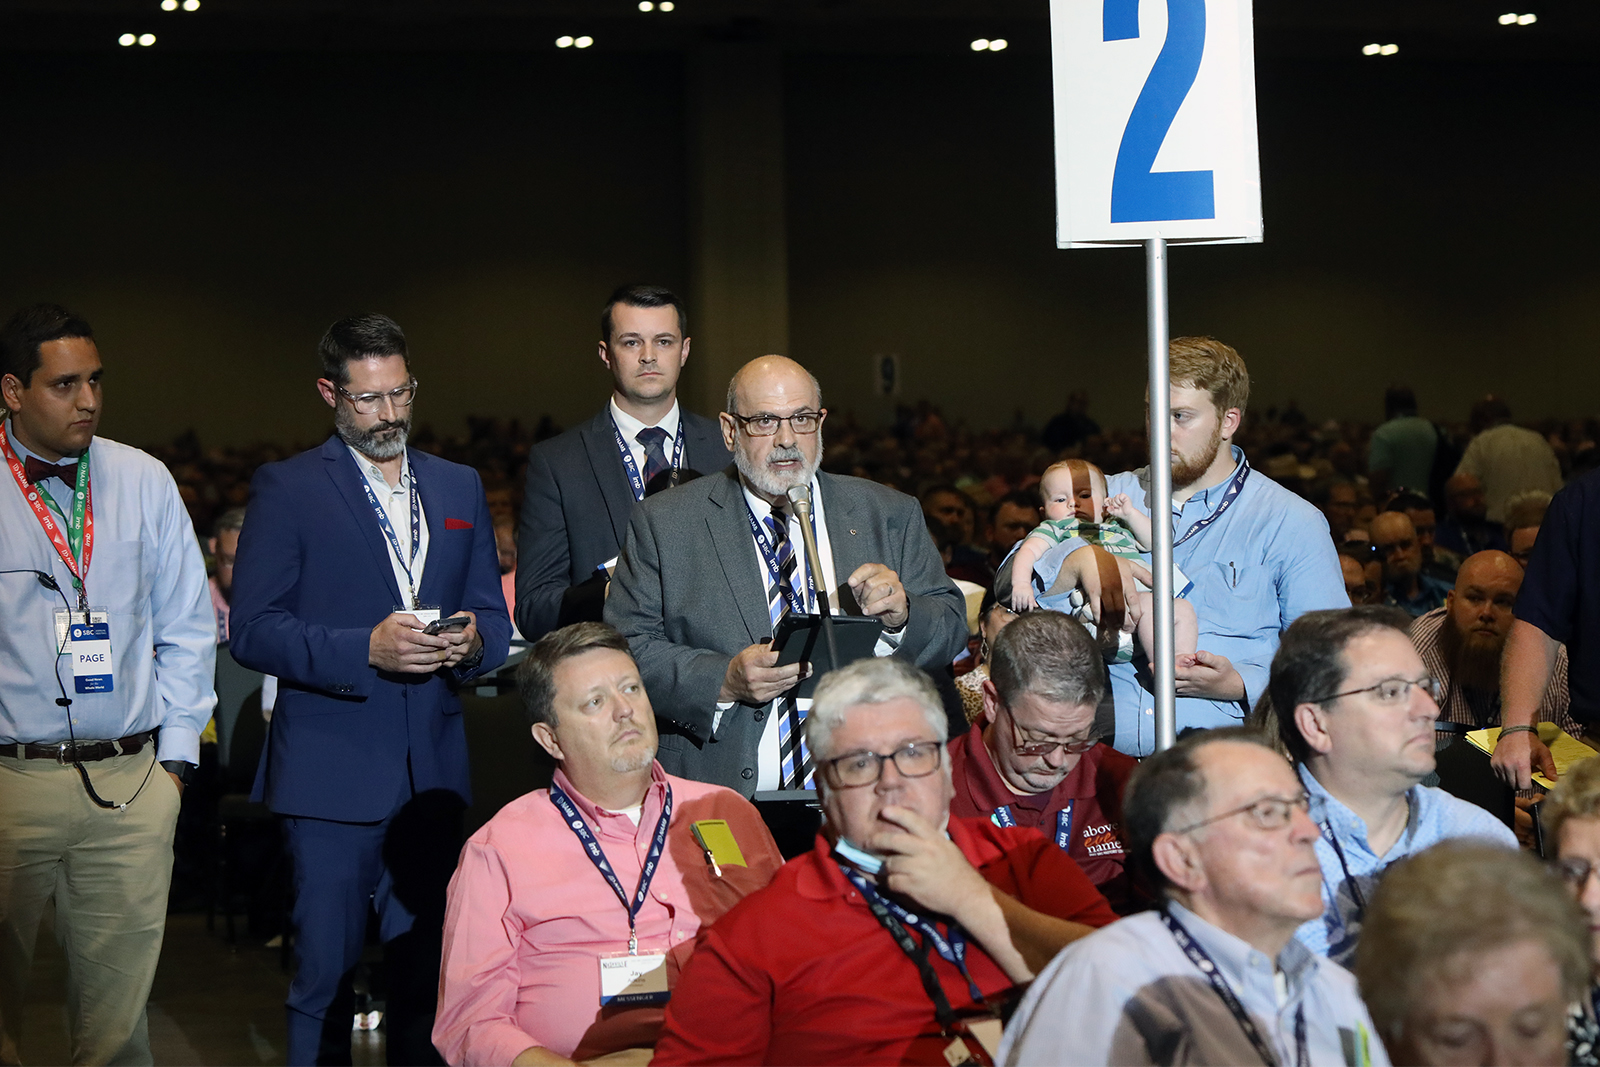 Messenger Bill Ascol, of Oklahoma, at microphone, addresses the Southern Baptist Convention annual meeting Tuesday afternoon, June 15, 2021, in Nasvhille. RNS photo by Kit Doyle